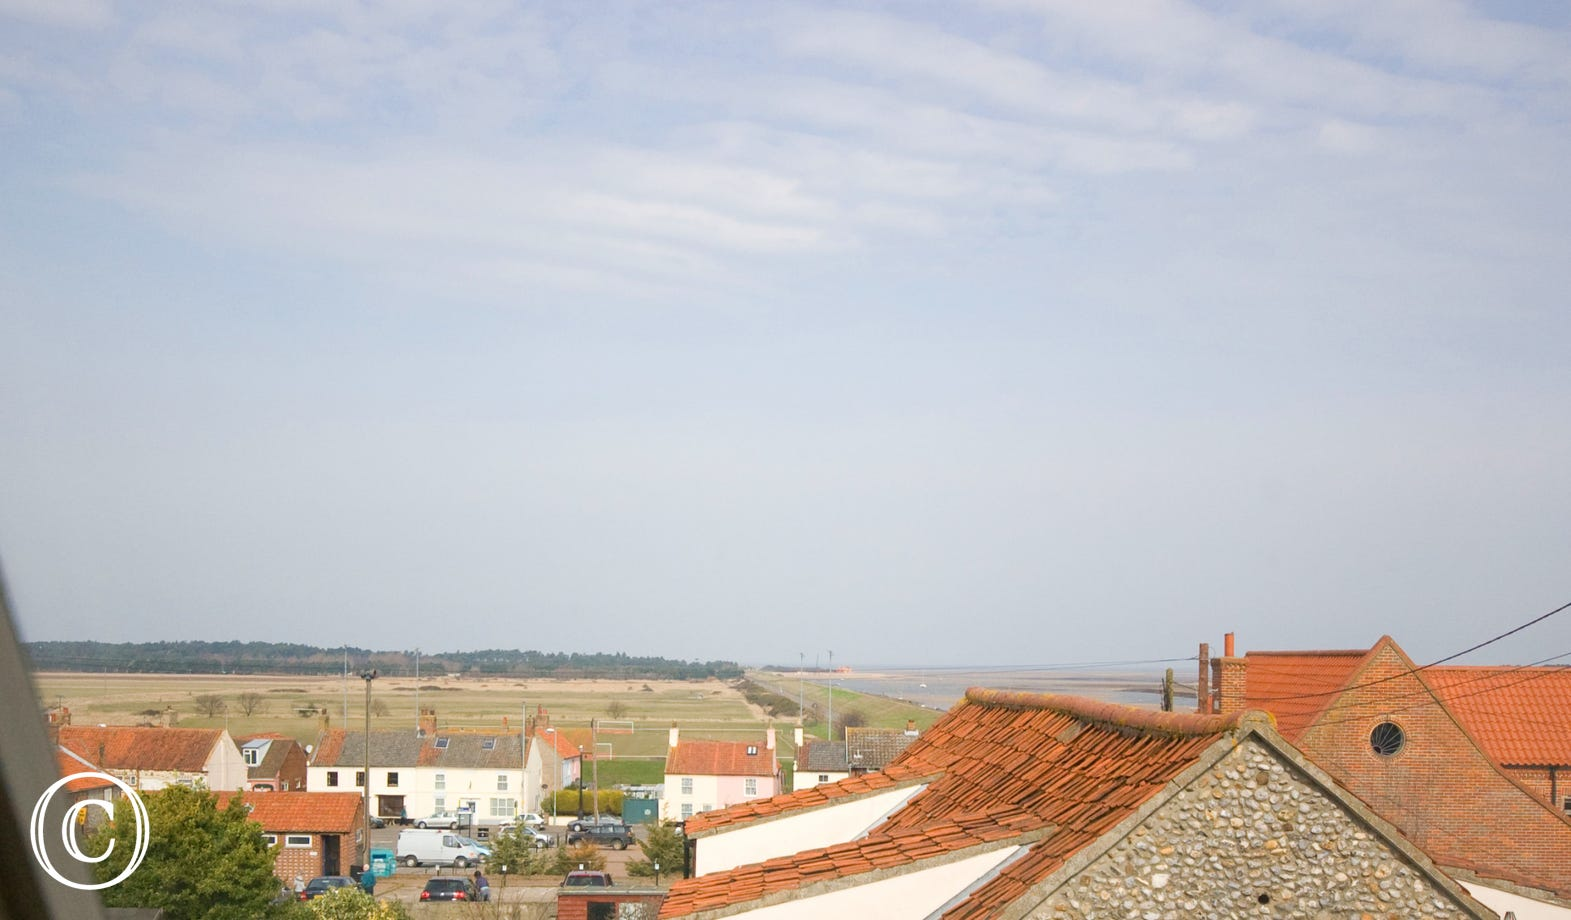 A view over the rooftops to the pinewoods and sea.